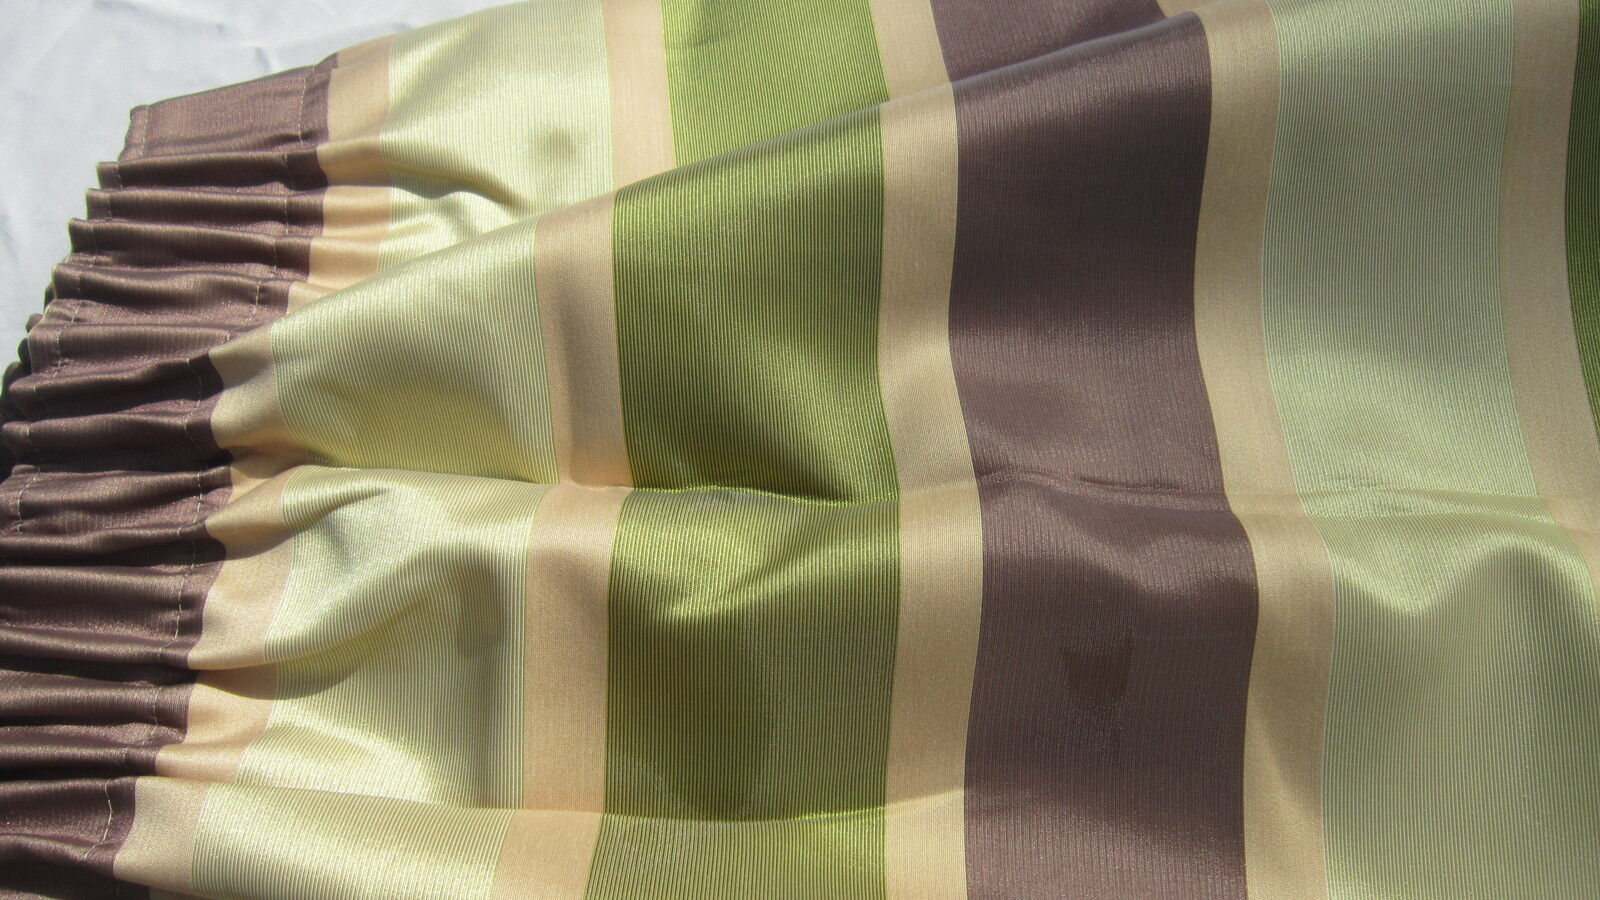 Pair lined silkmix quality curtains 52 in wide 54 54 54 inch drop weighted corners 14c723